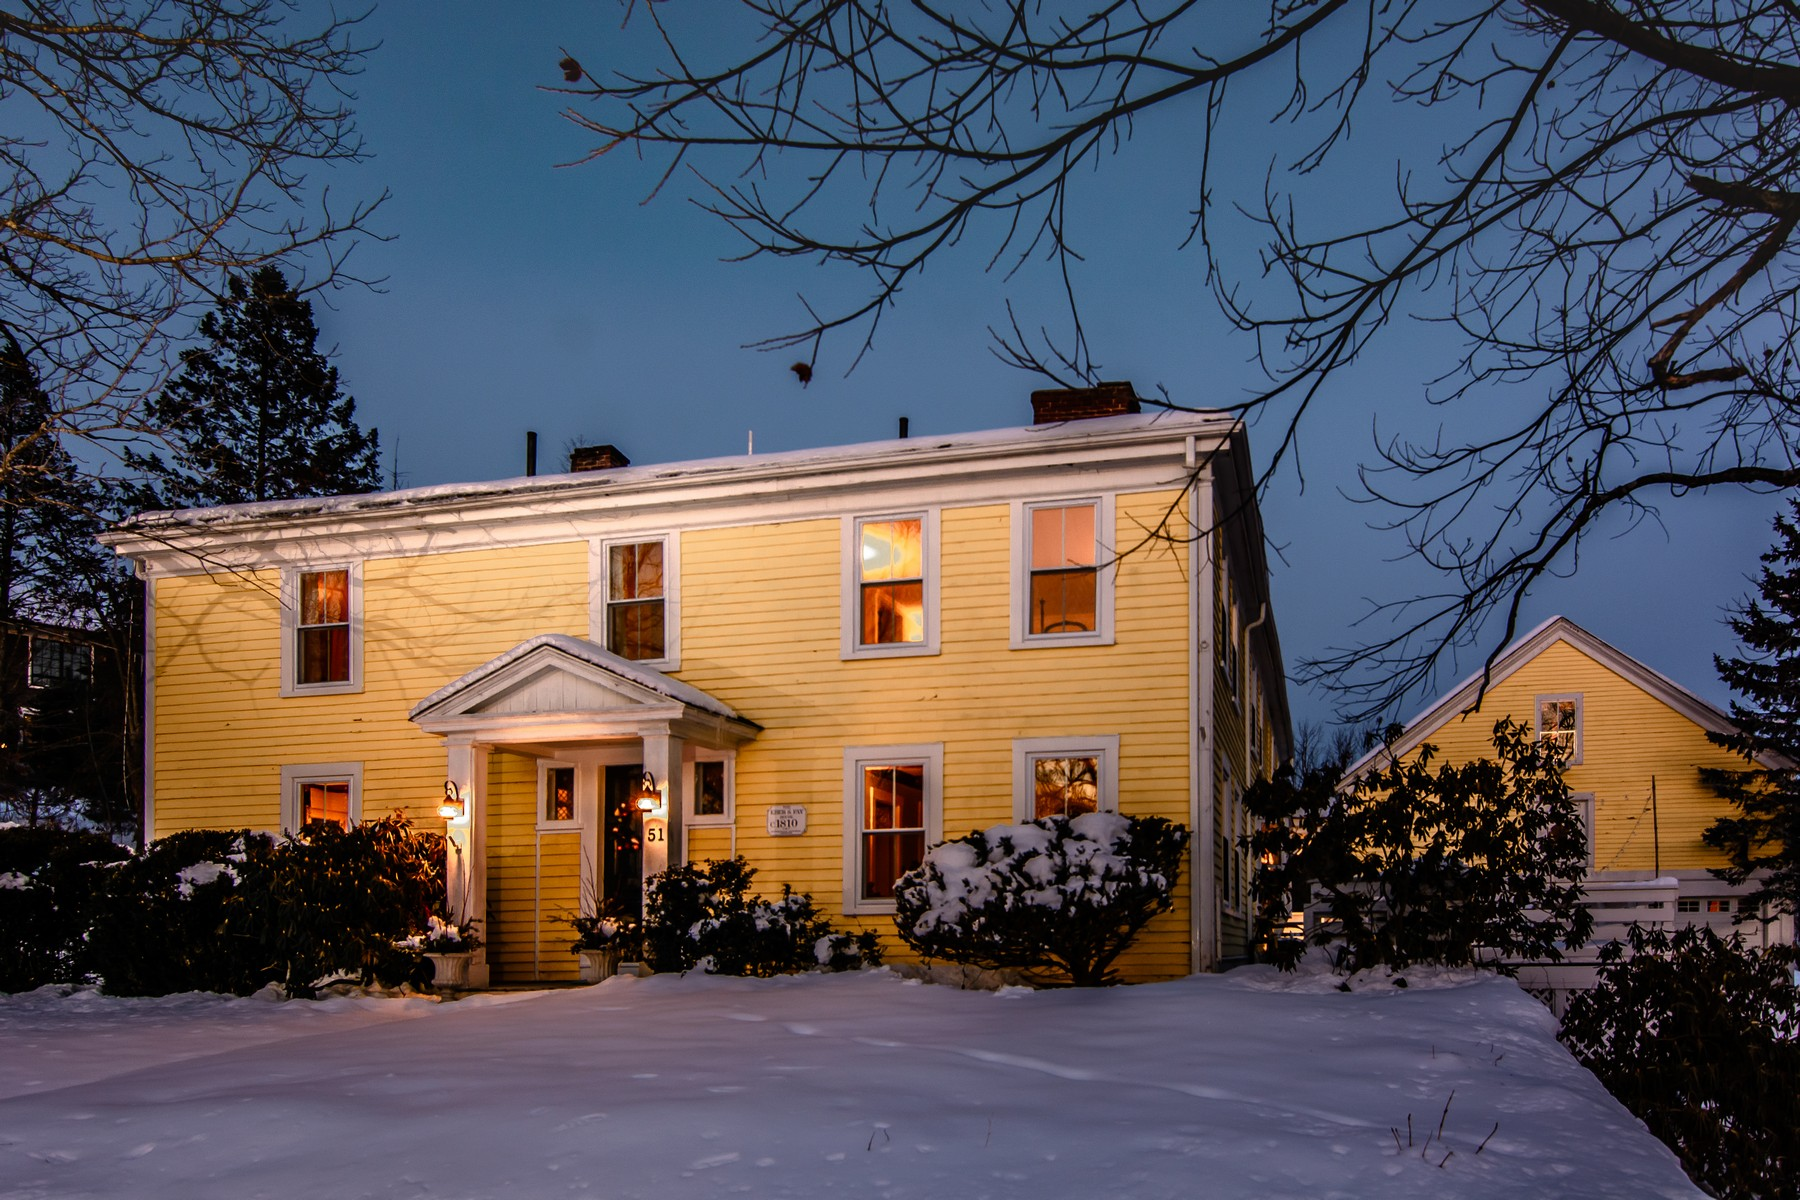 Single Family Home for Active at Eber S. Fay House - Inviting Antique Farmhouse 51 Sears Road Southborough, Massachusetts 01772 United States